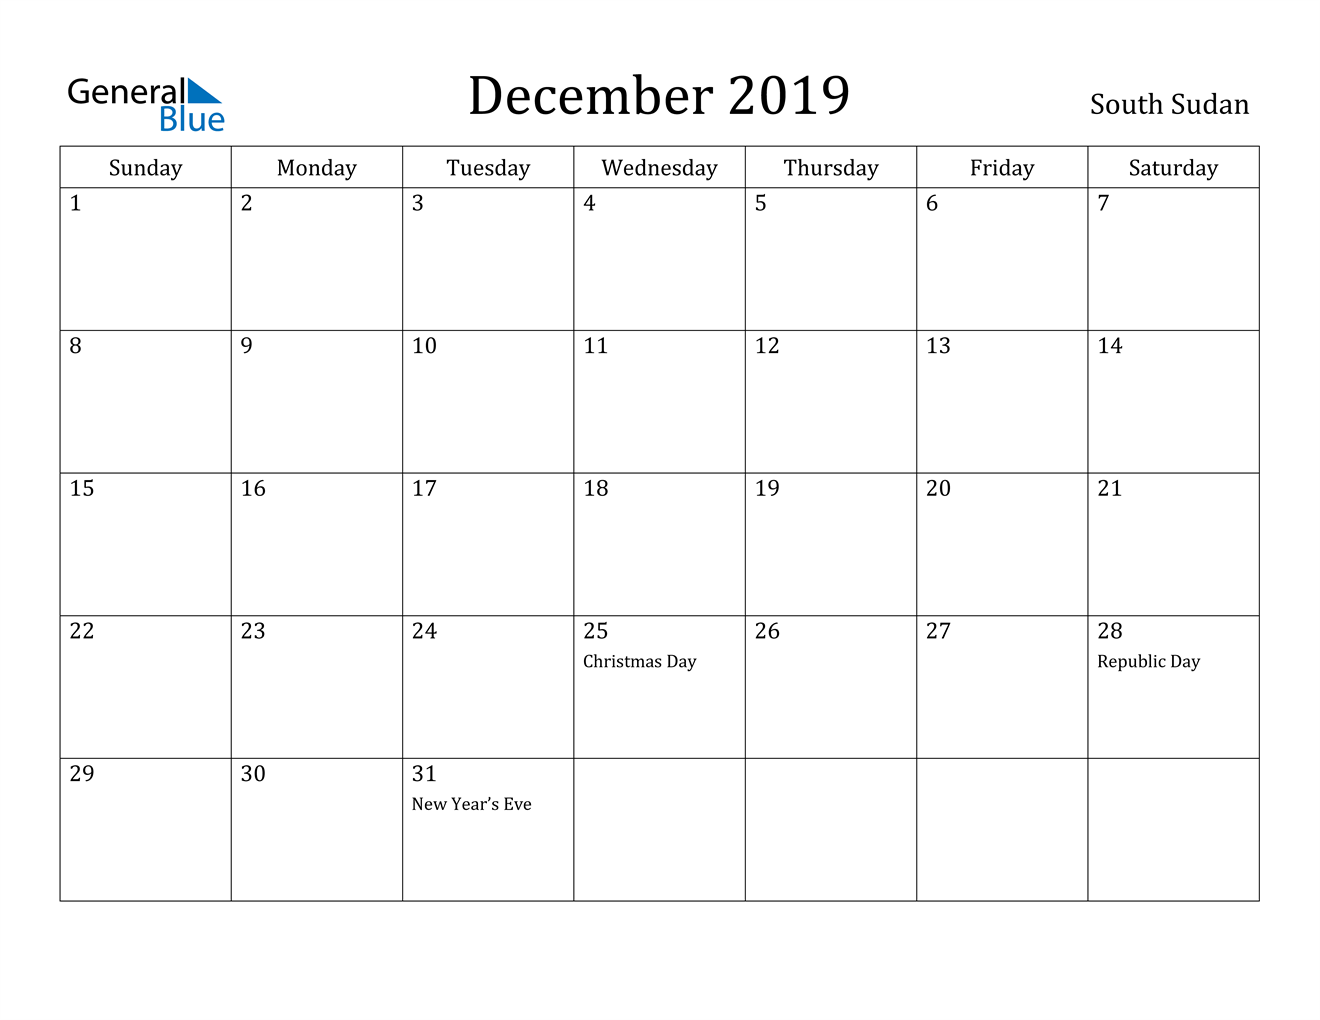 Image of December 2019 South Sudan Calendar with Holidays Calendar